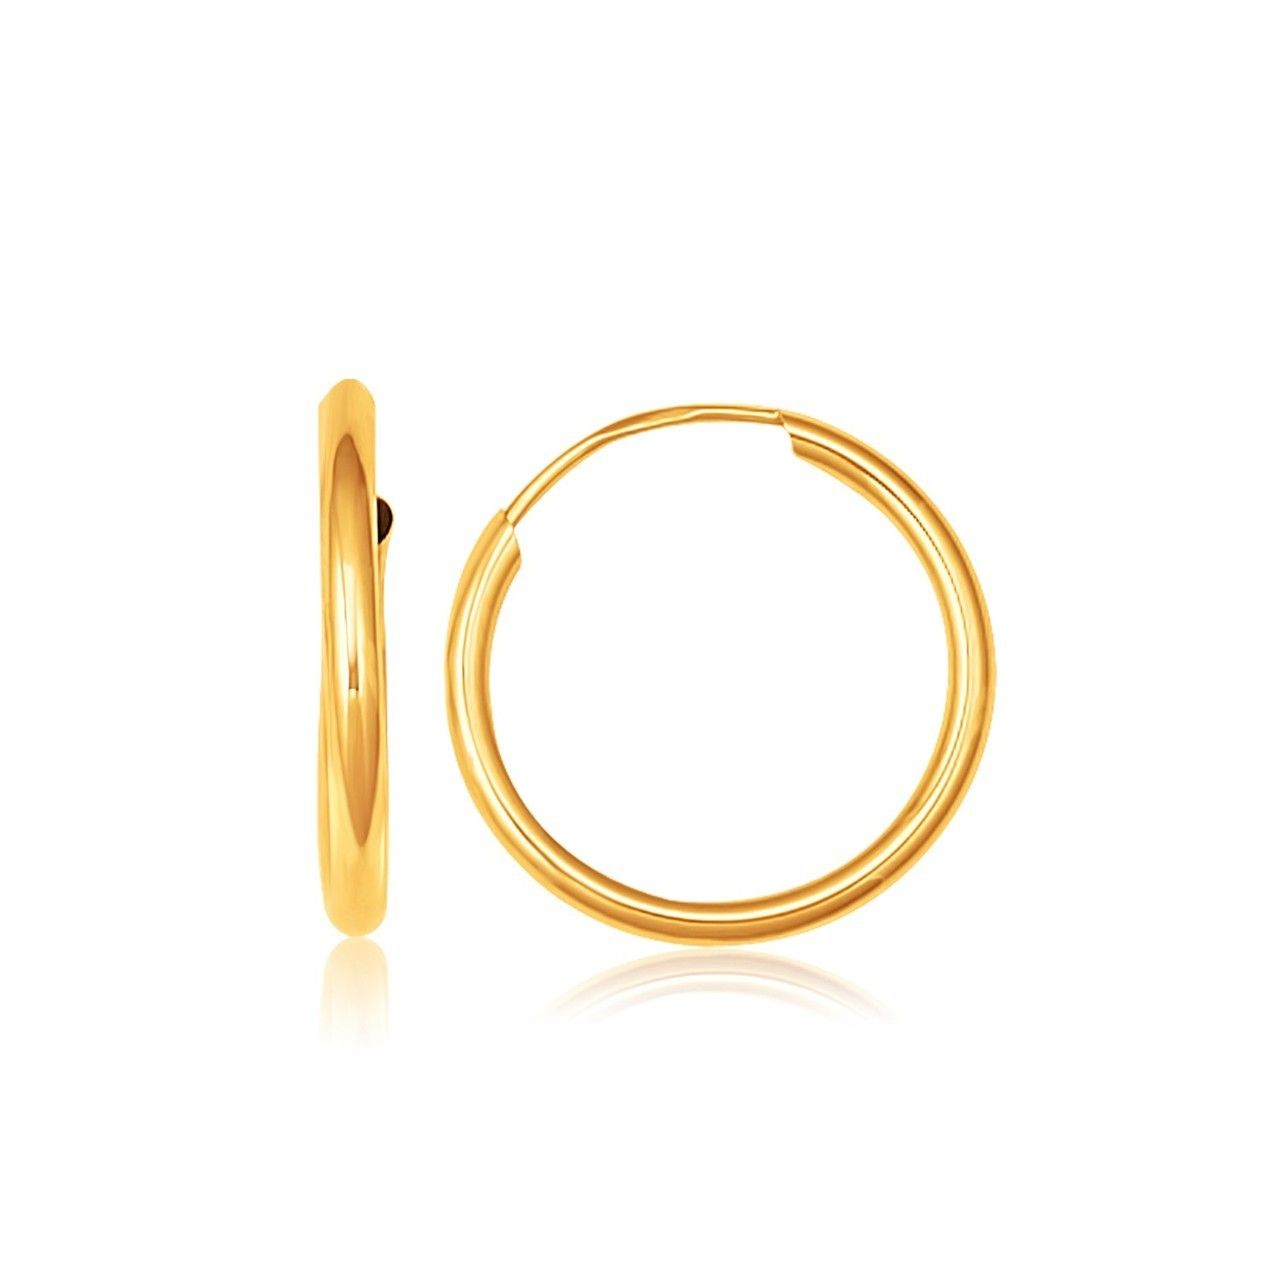 Gold Luxury Jewelry, High Quality Gold Earrings. Gold Jewelry Gifts for Women, White Gold Earrings. Best Gold Earrings for Women, High-end Gifts.  Uniquepedia.com - 14K Yellow Gold Polished Endless Hoop Earrings (5/8 inch Diameter), $49.00 (http://www.uniquepedia.com/14k-yellow-gold-polished-endless-hoop-earrings-5-8-inch-diameter/)